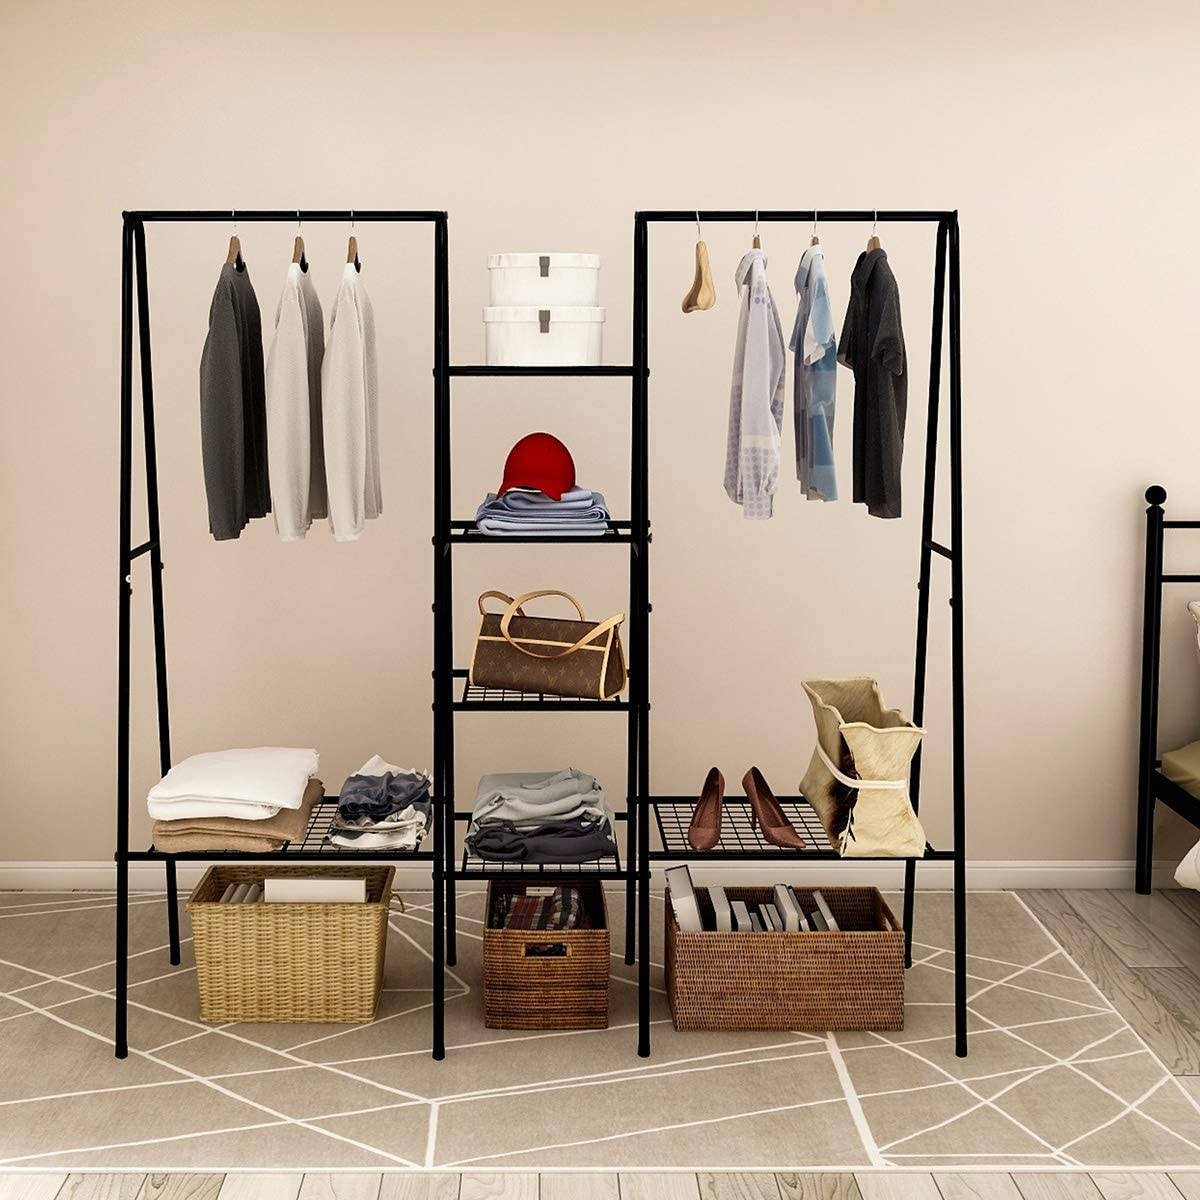 Freestanding Garment Rack for Extra Storage /& No Tool Assembly Office or Home Perfect for Your Bedroom 1 Hanging Rod /& Bottom Storage Type A Portable Clothes Rack Silver